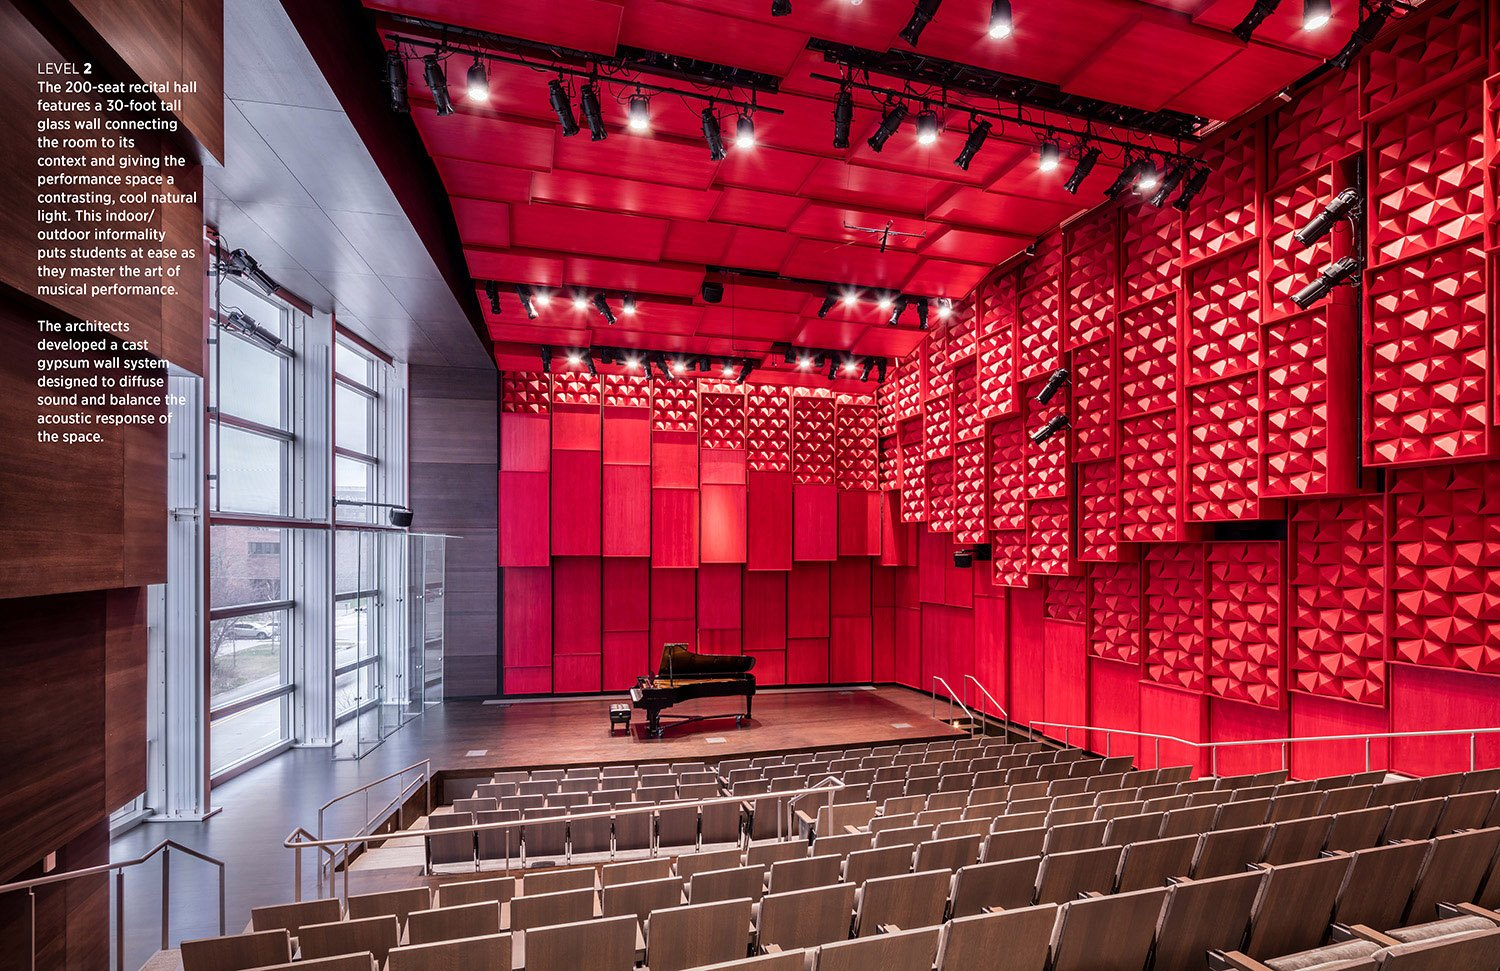 The 200-seat recital hall at the second level features a 30-foot tall glass wall connecting the room to its context and giving the performance space a contrasting, cool natural light. This indoor/outdoor i Tim Griffith